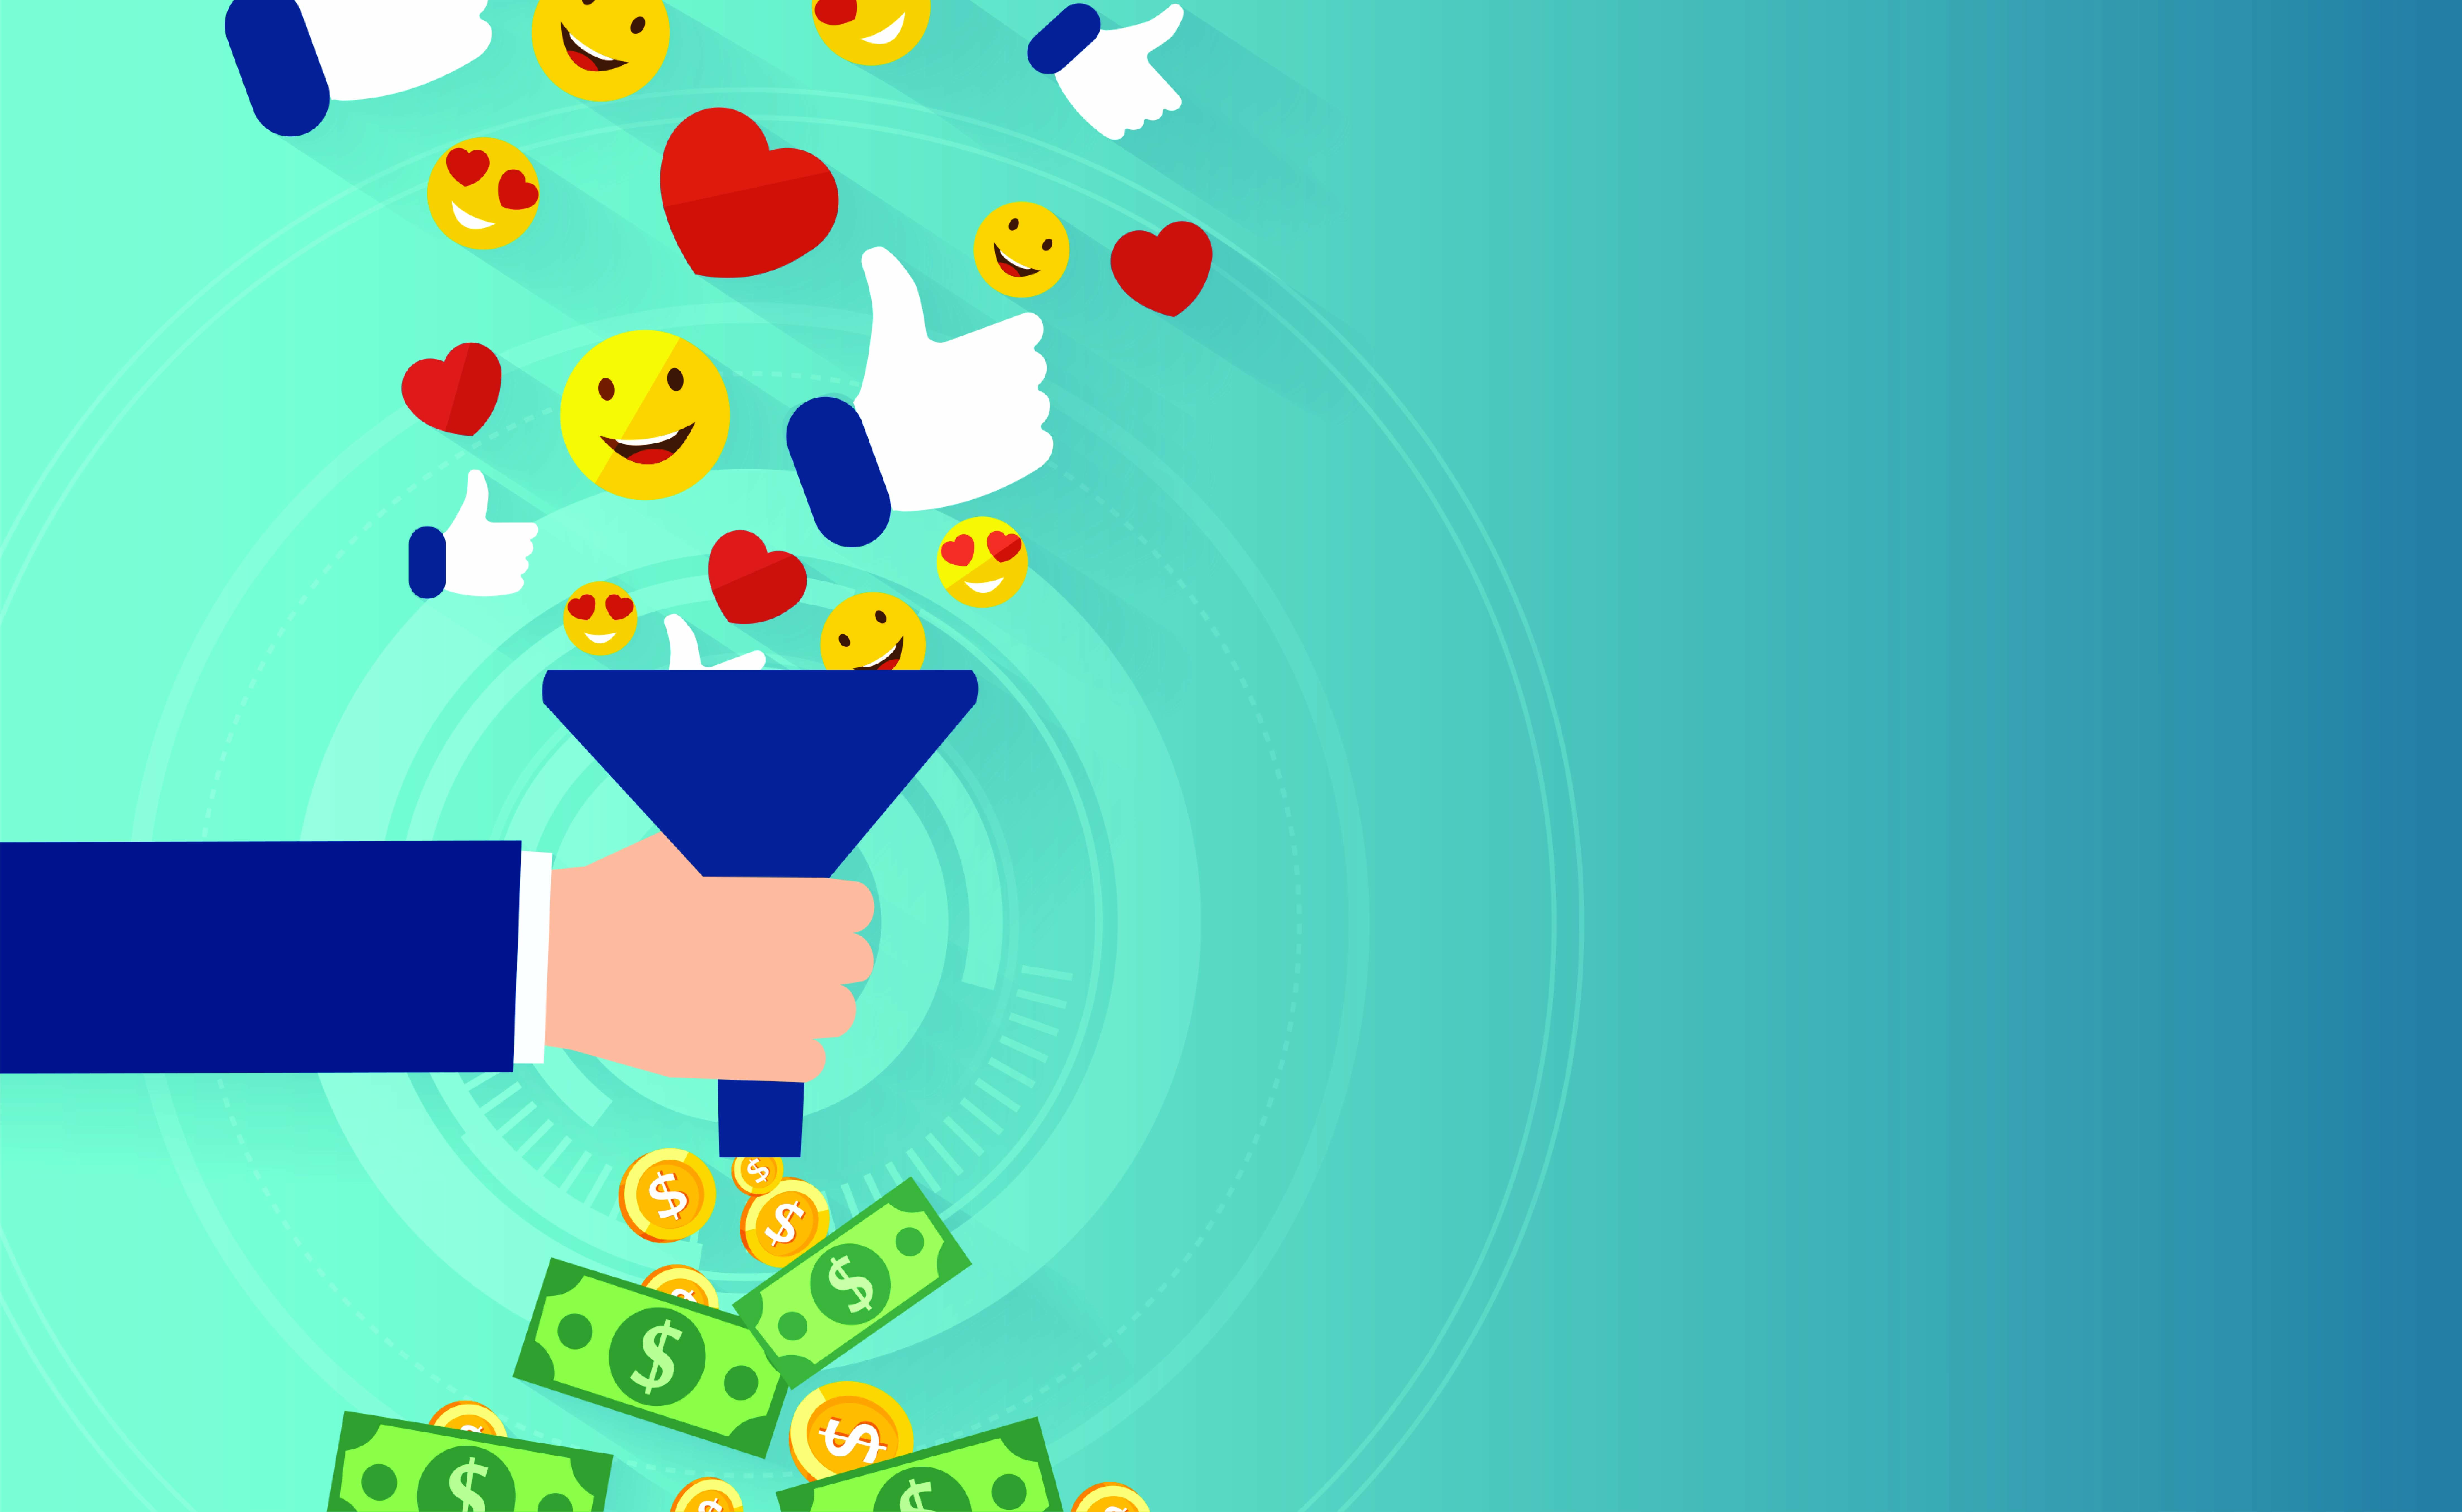 How to Monetize Social Media: 6 Helpful Tips